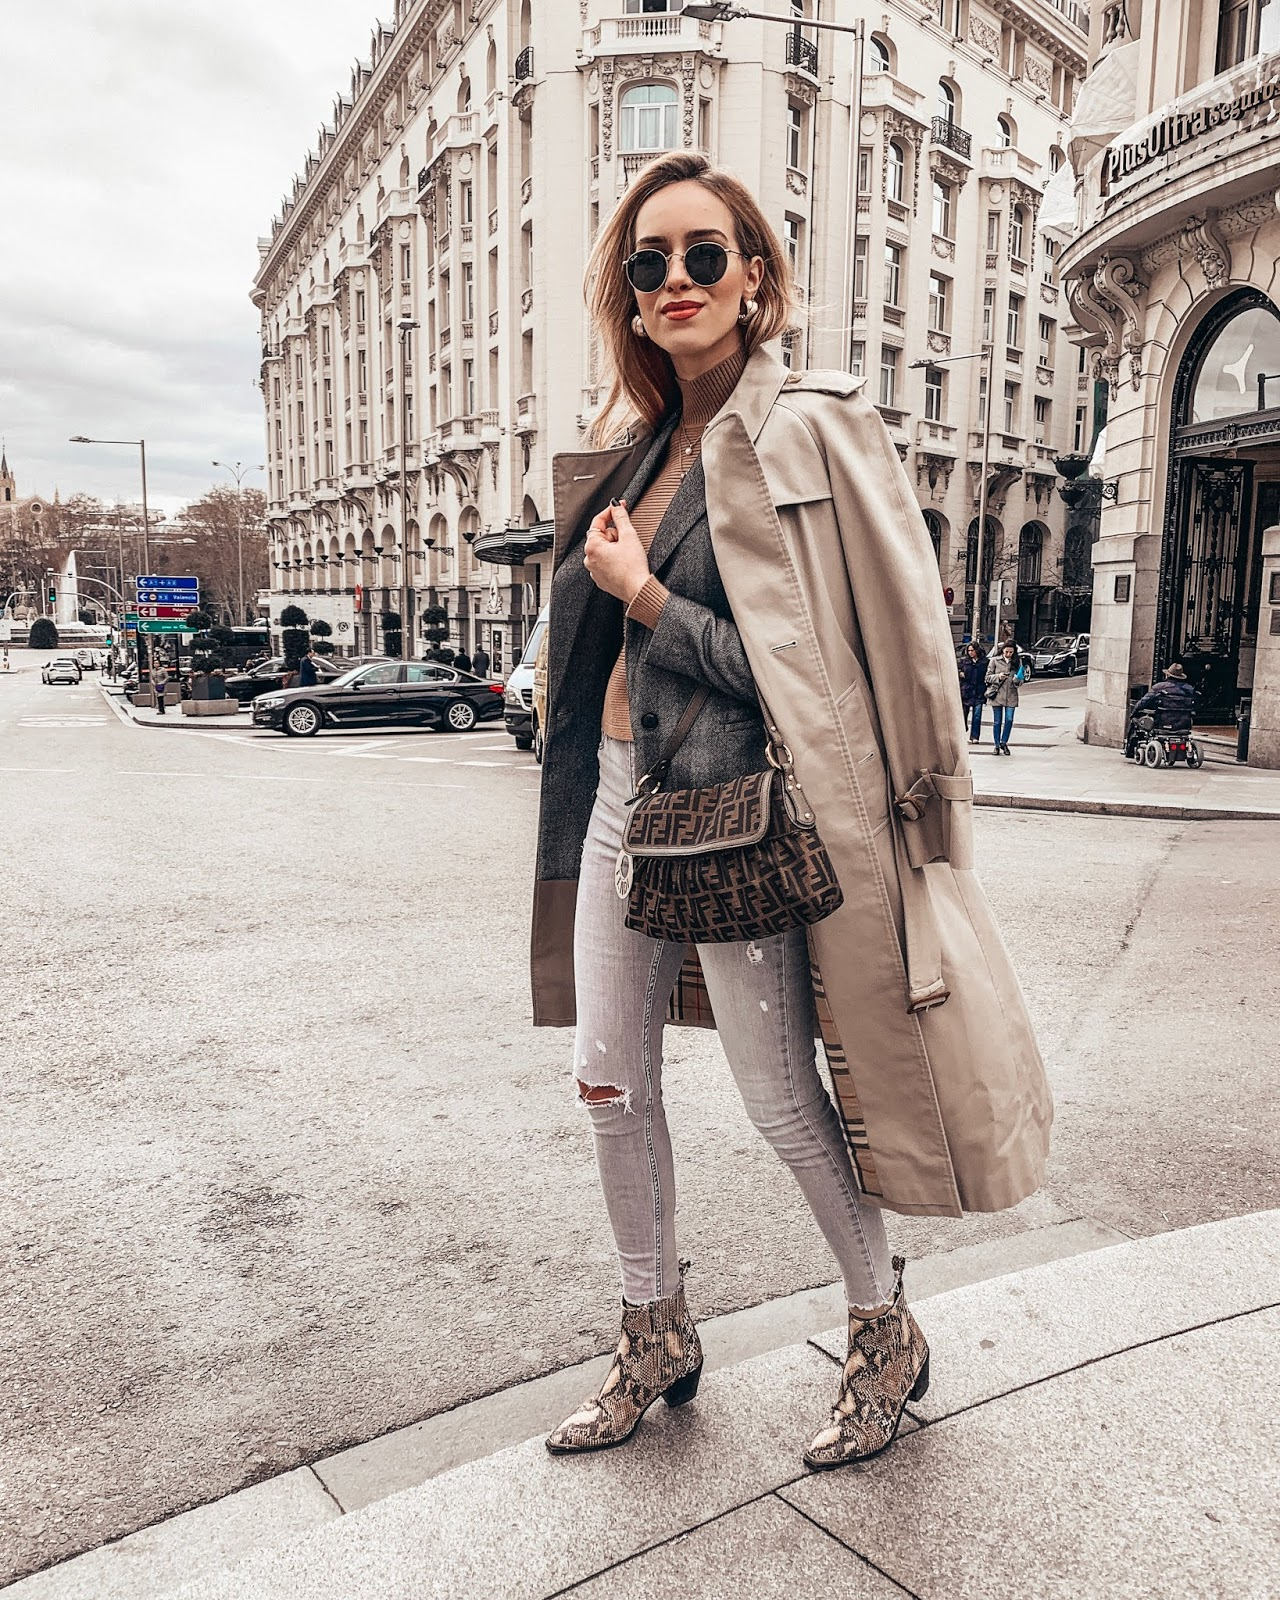 burberry coat outfit